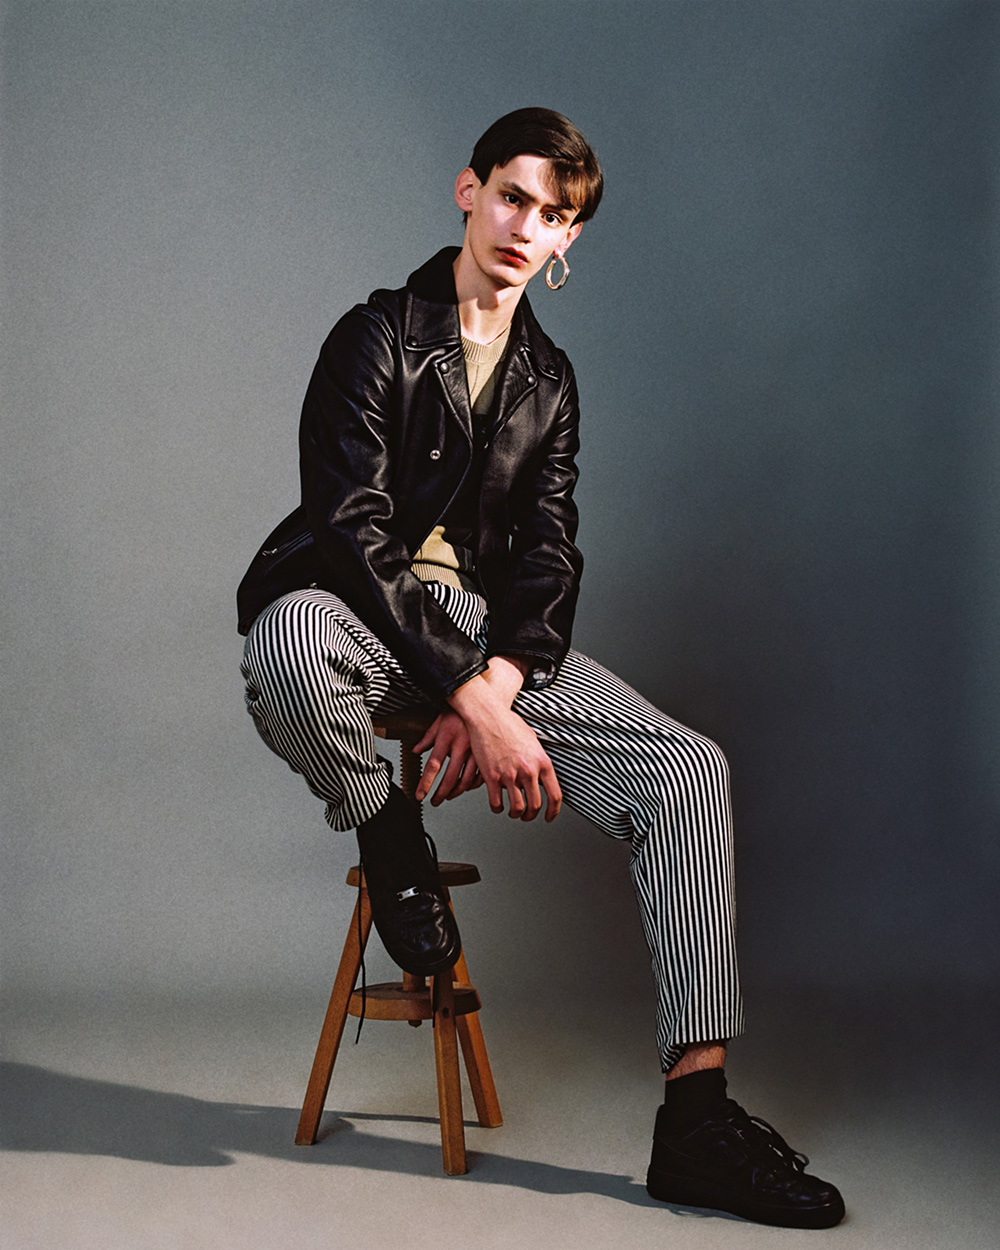 Jacket Acne Studios, t-shirt Dries Van Noten, pants Laurence Airline, shoes stylists own, earring stylist own